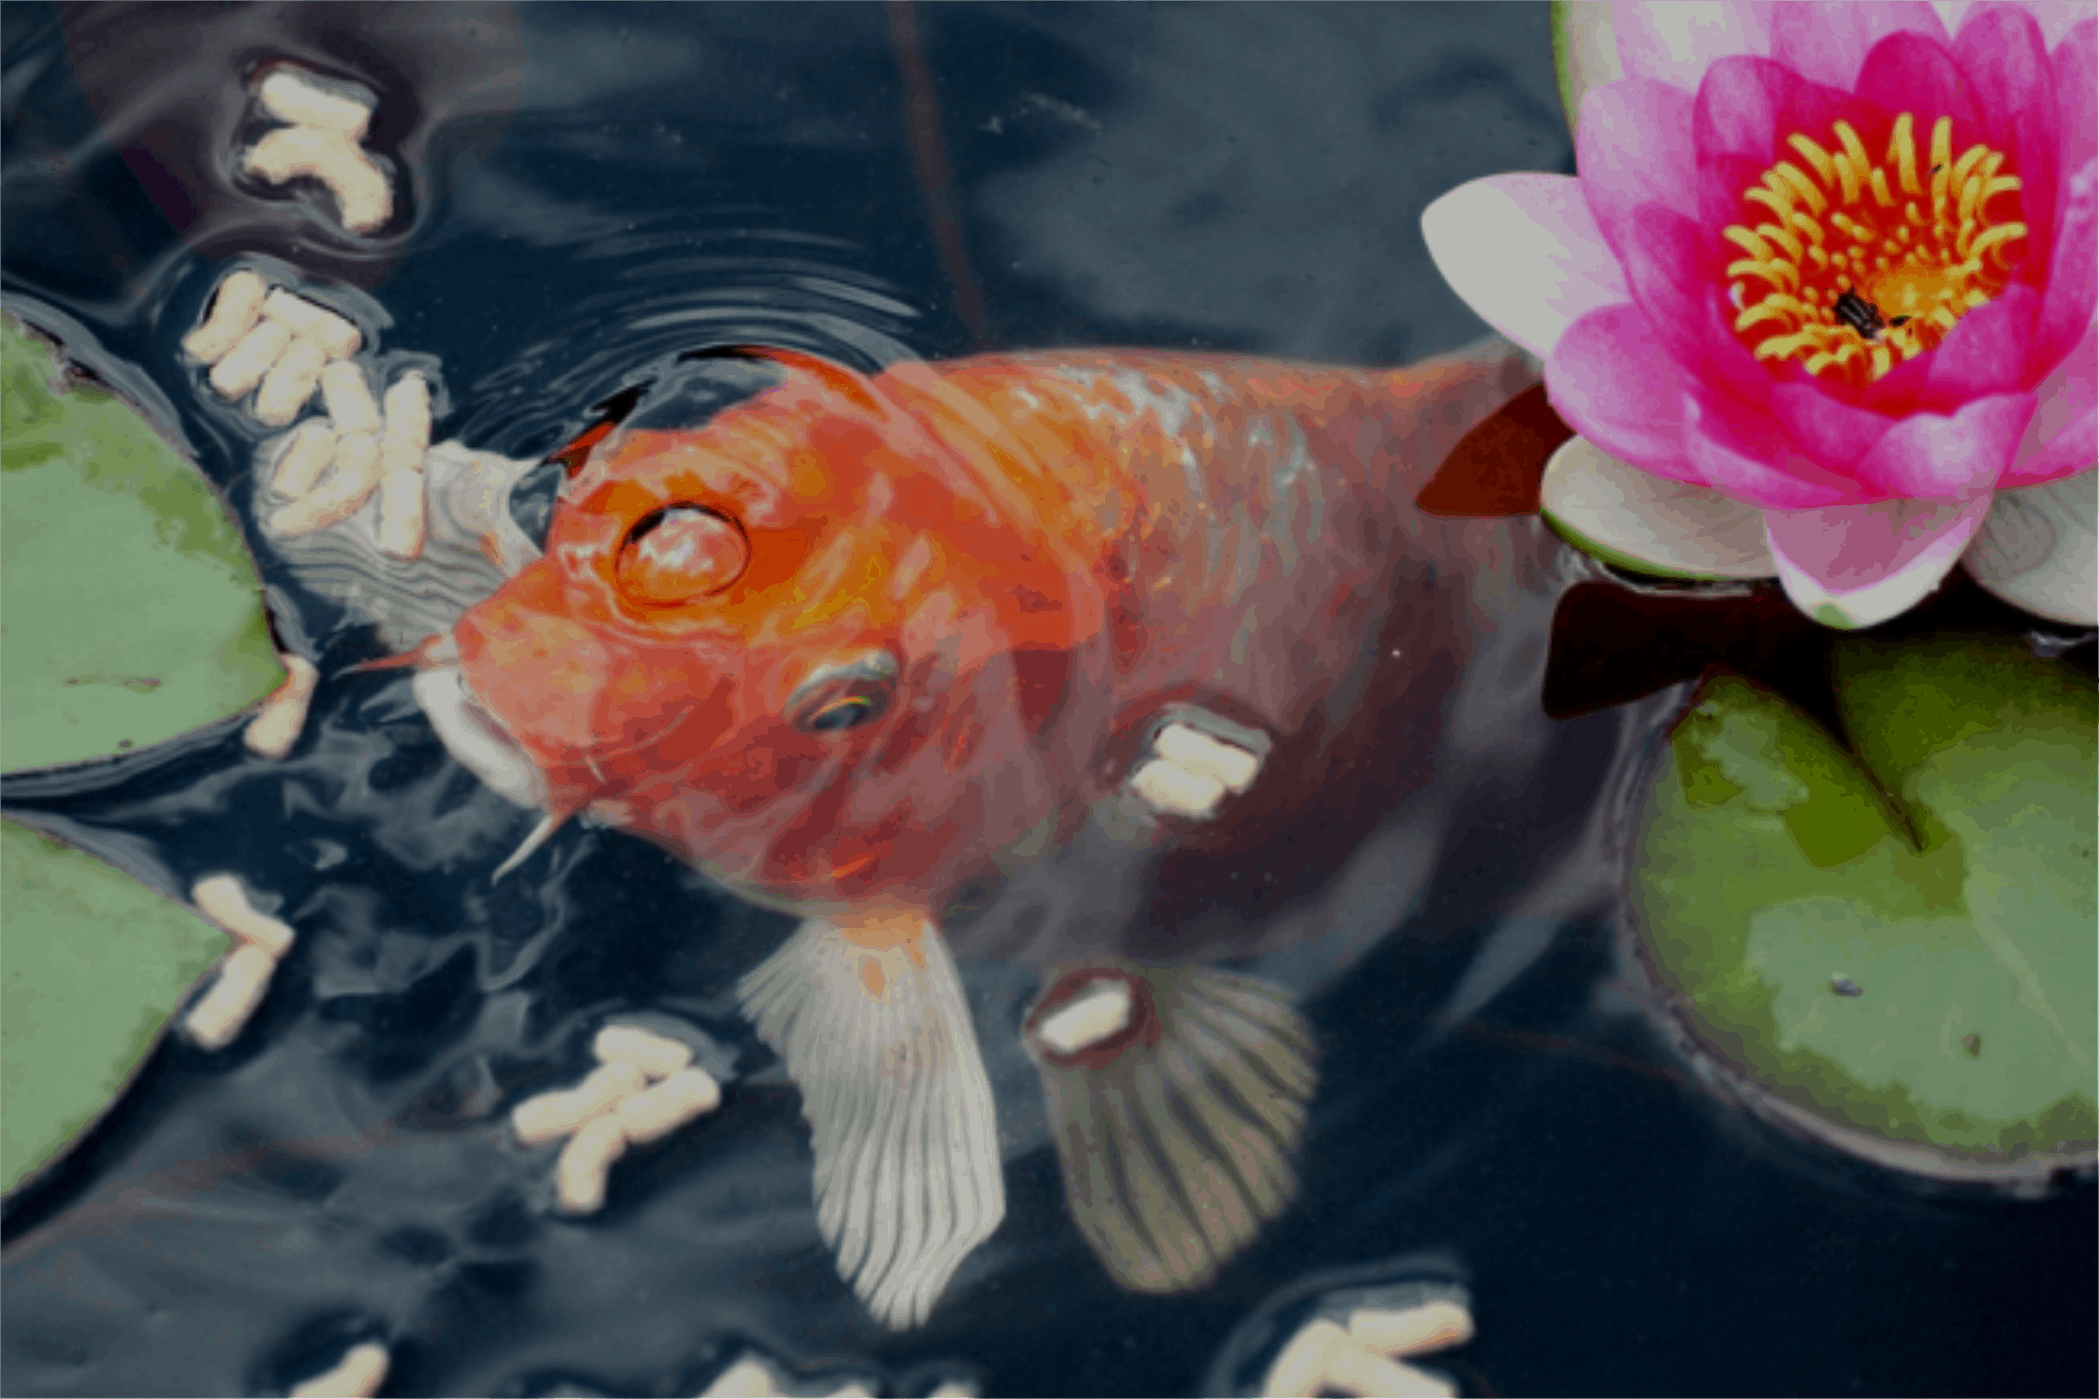 koi fish eating food